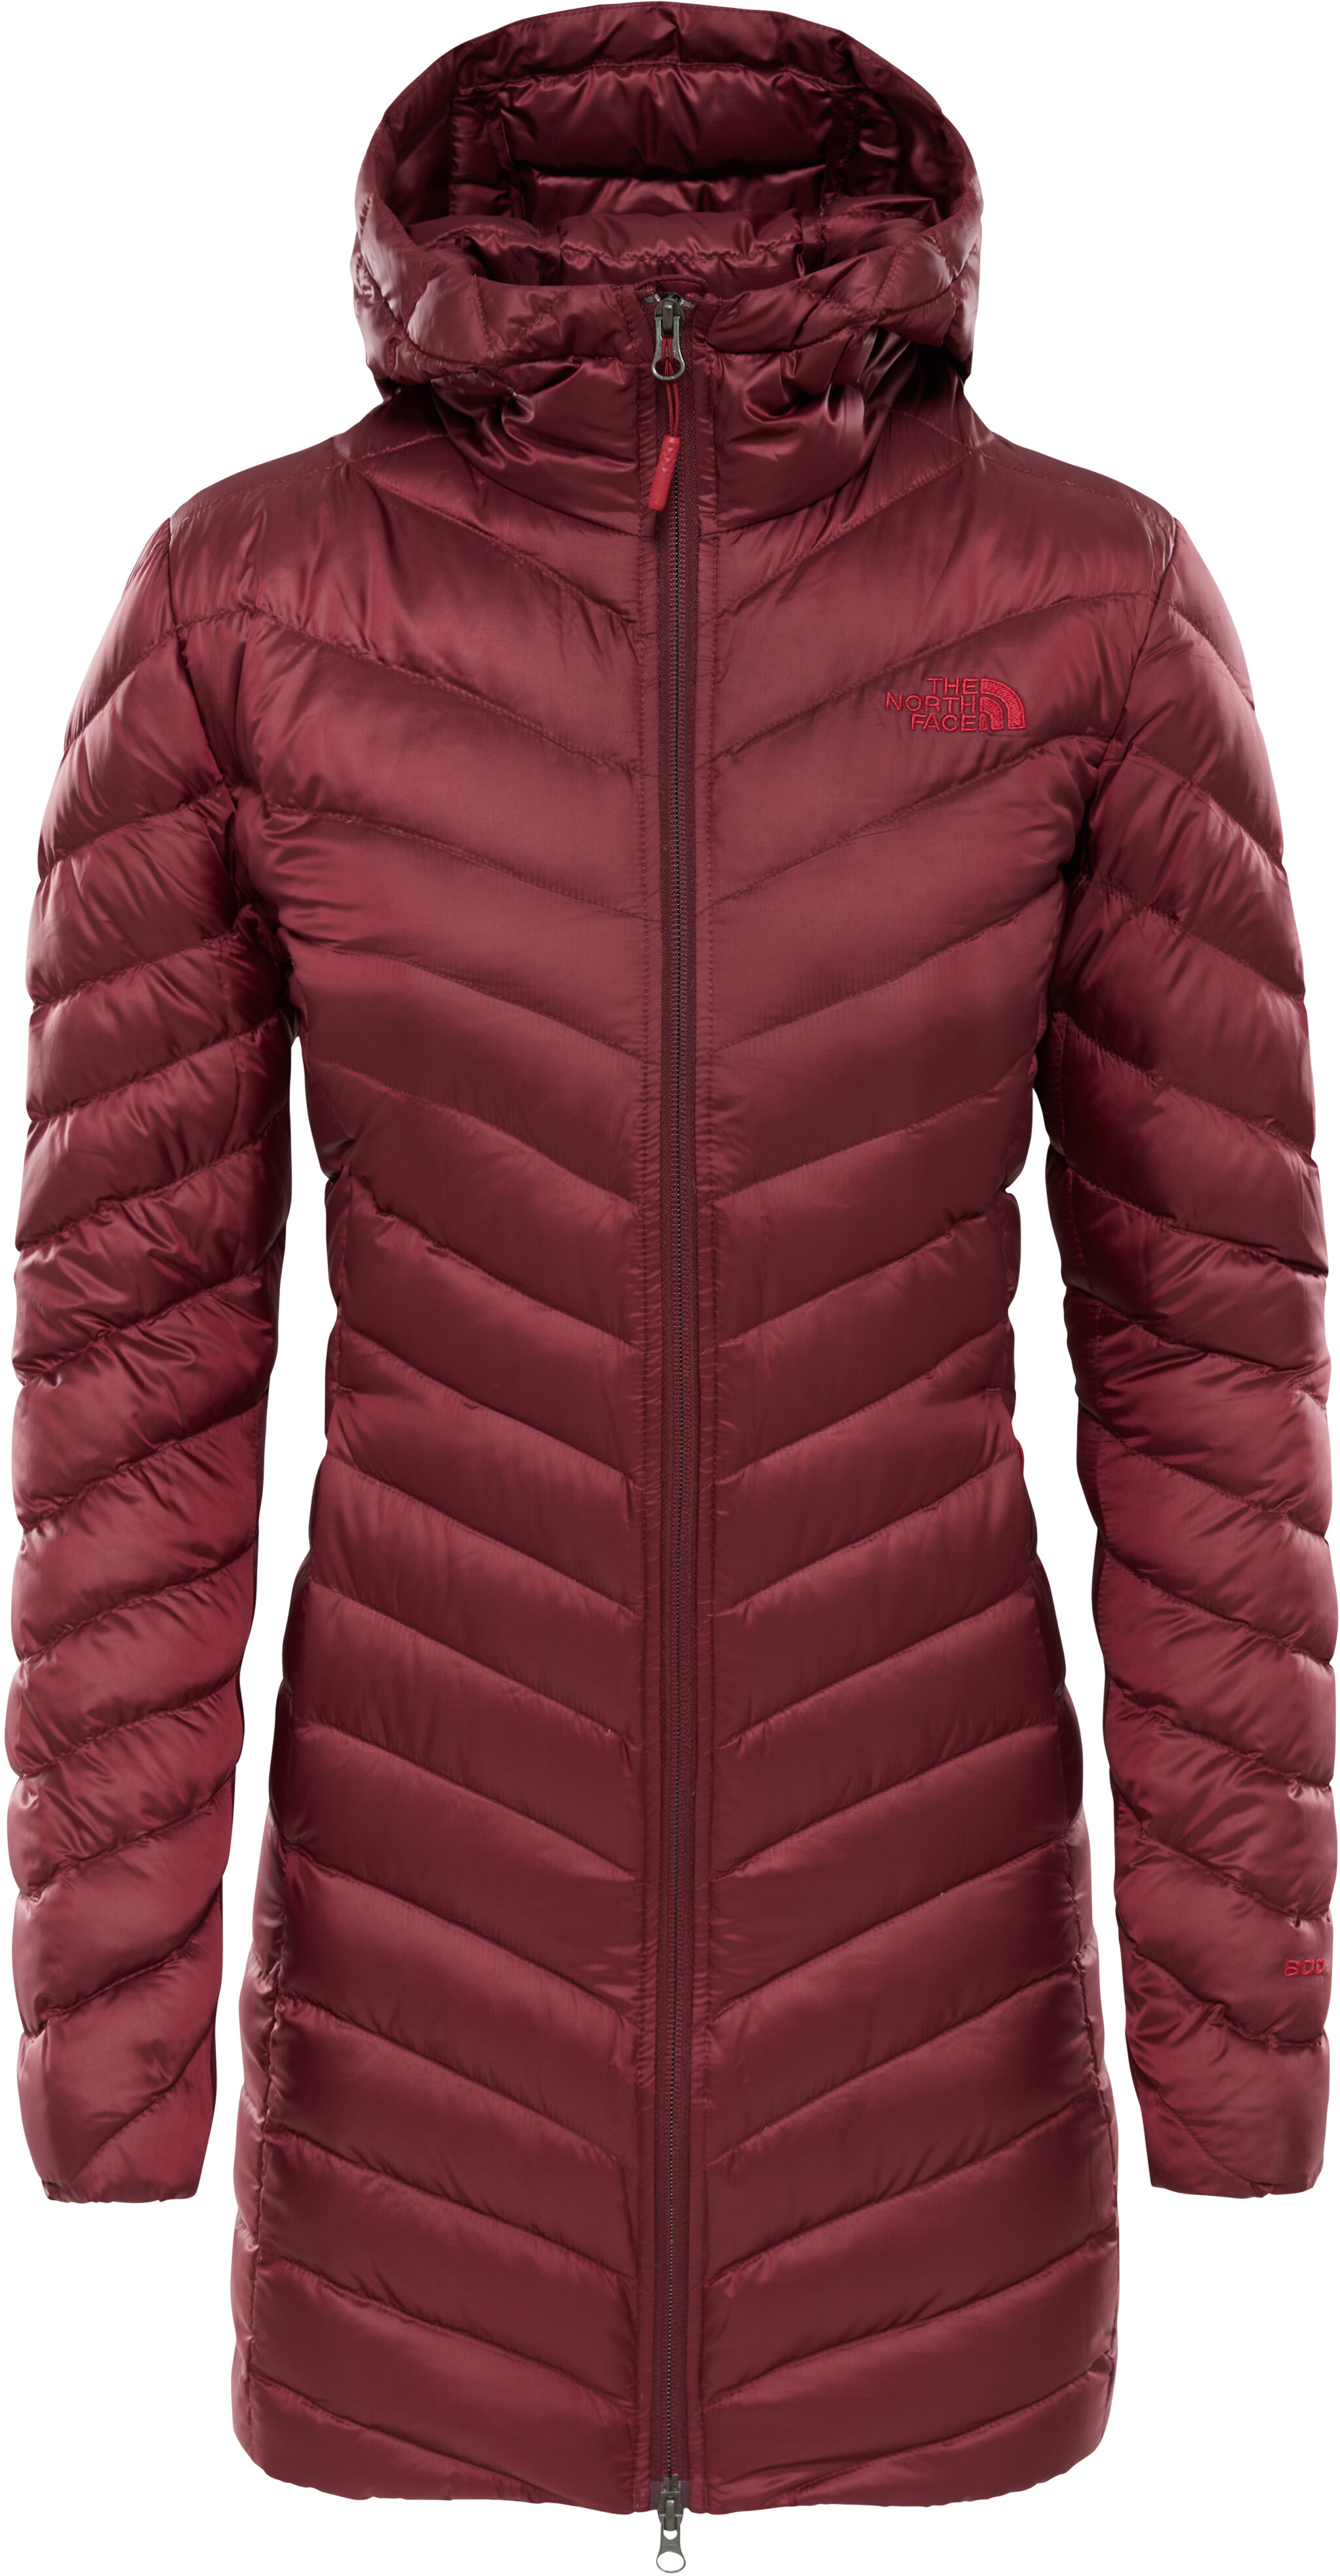 a2c8f2e38a070 The North Face Trevail - Chaqueta Mujer - rojo